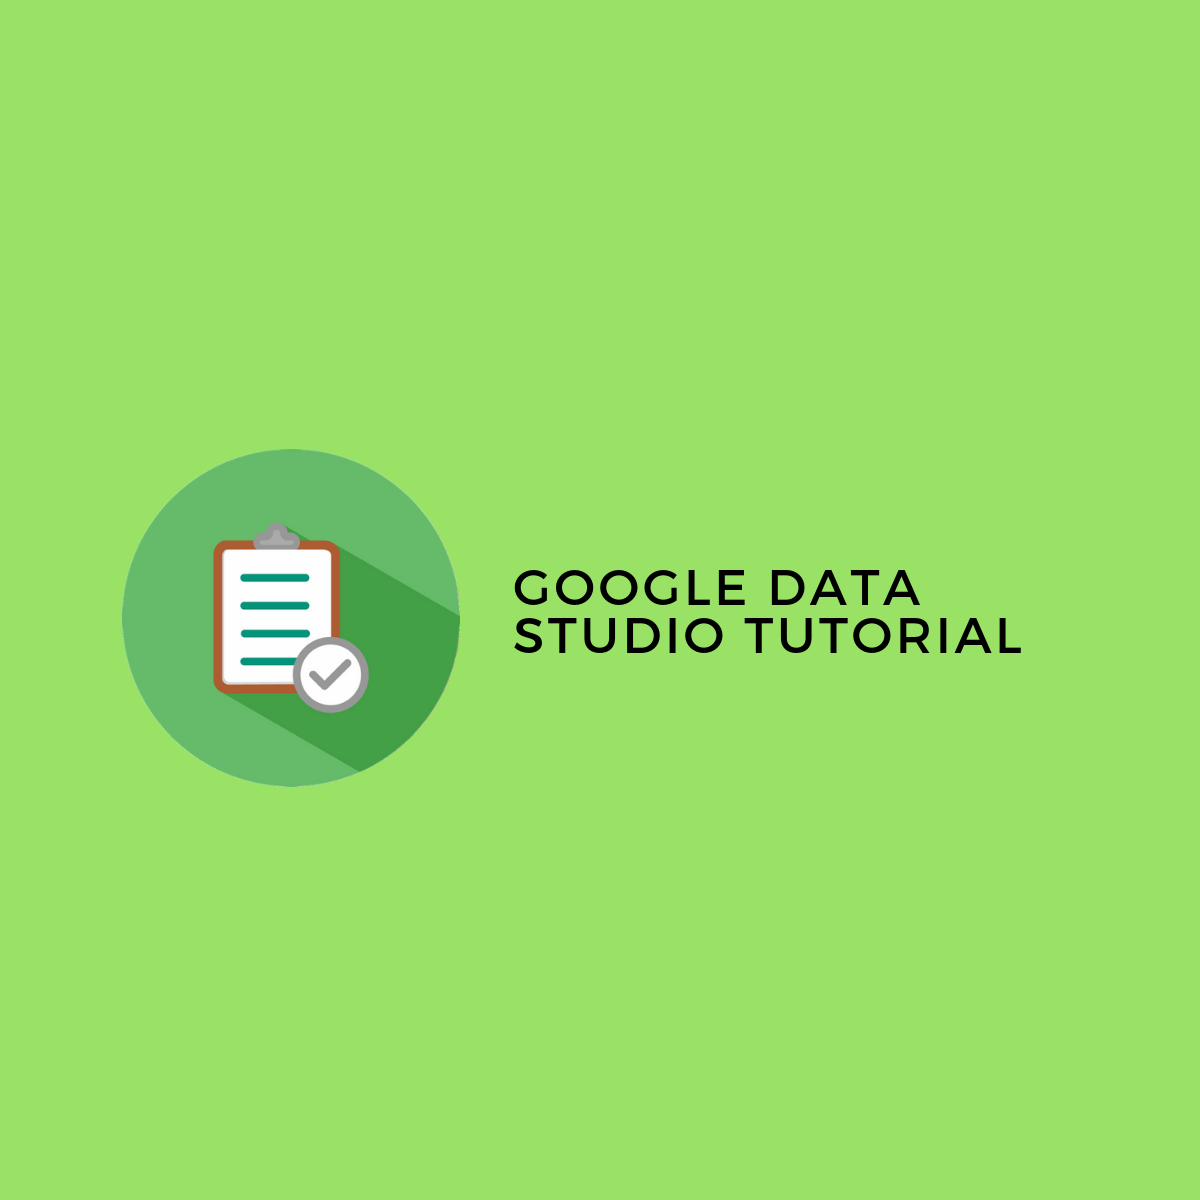 Google Data Studio Tutorial: A strategic guide to building